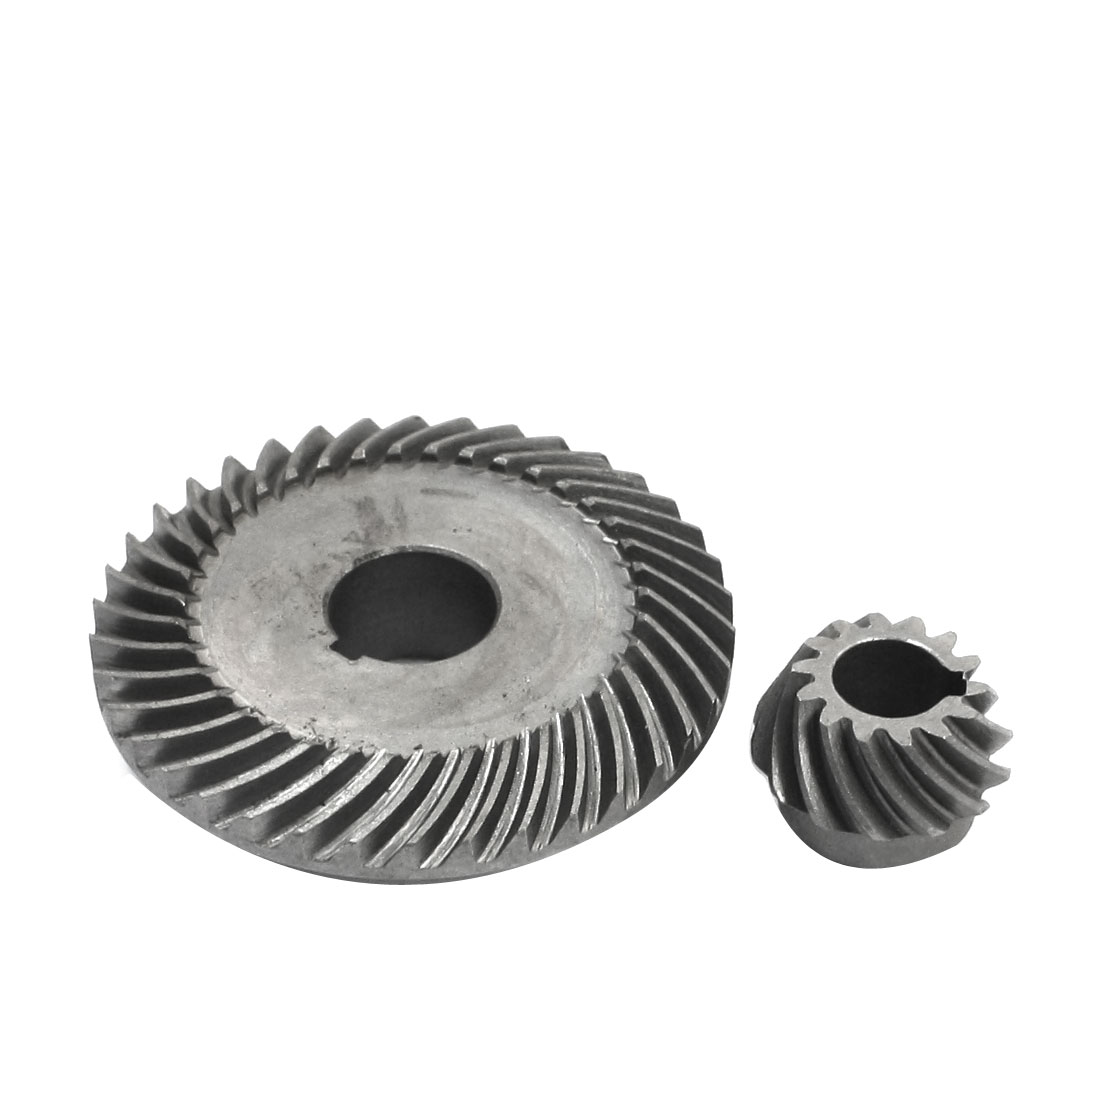 Replacement Metal Spiral Bevel Gear Set for Hitachi 150 Angle Grinder (Old Type)